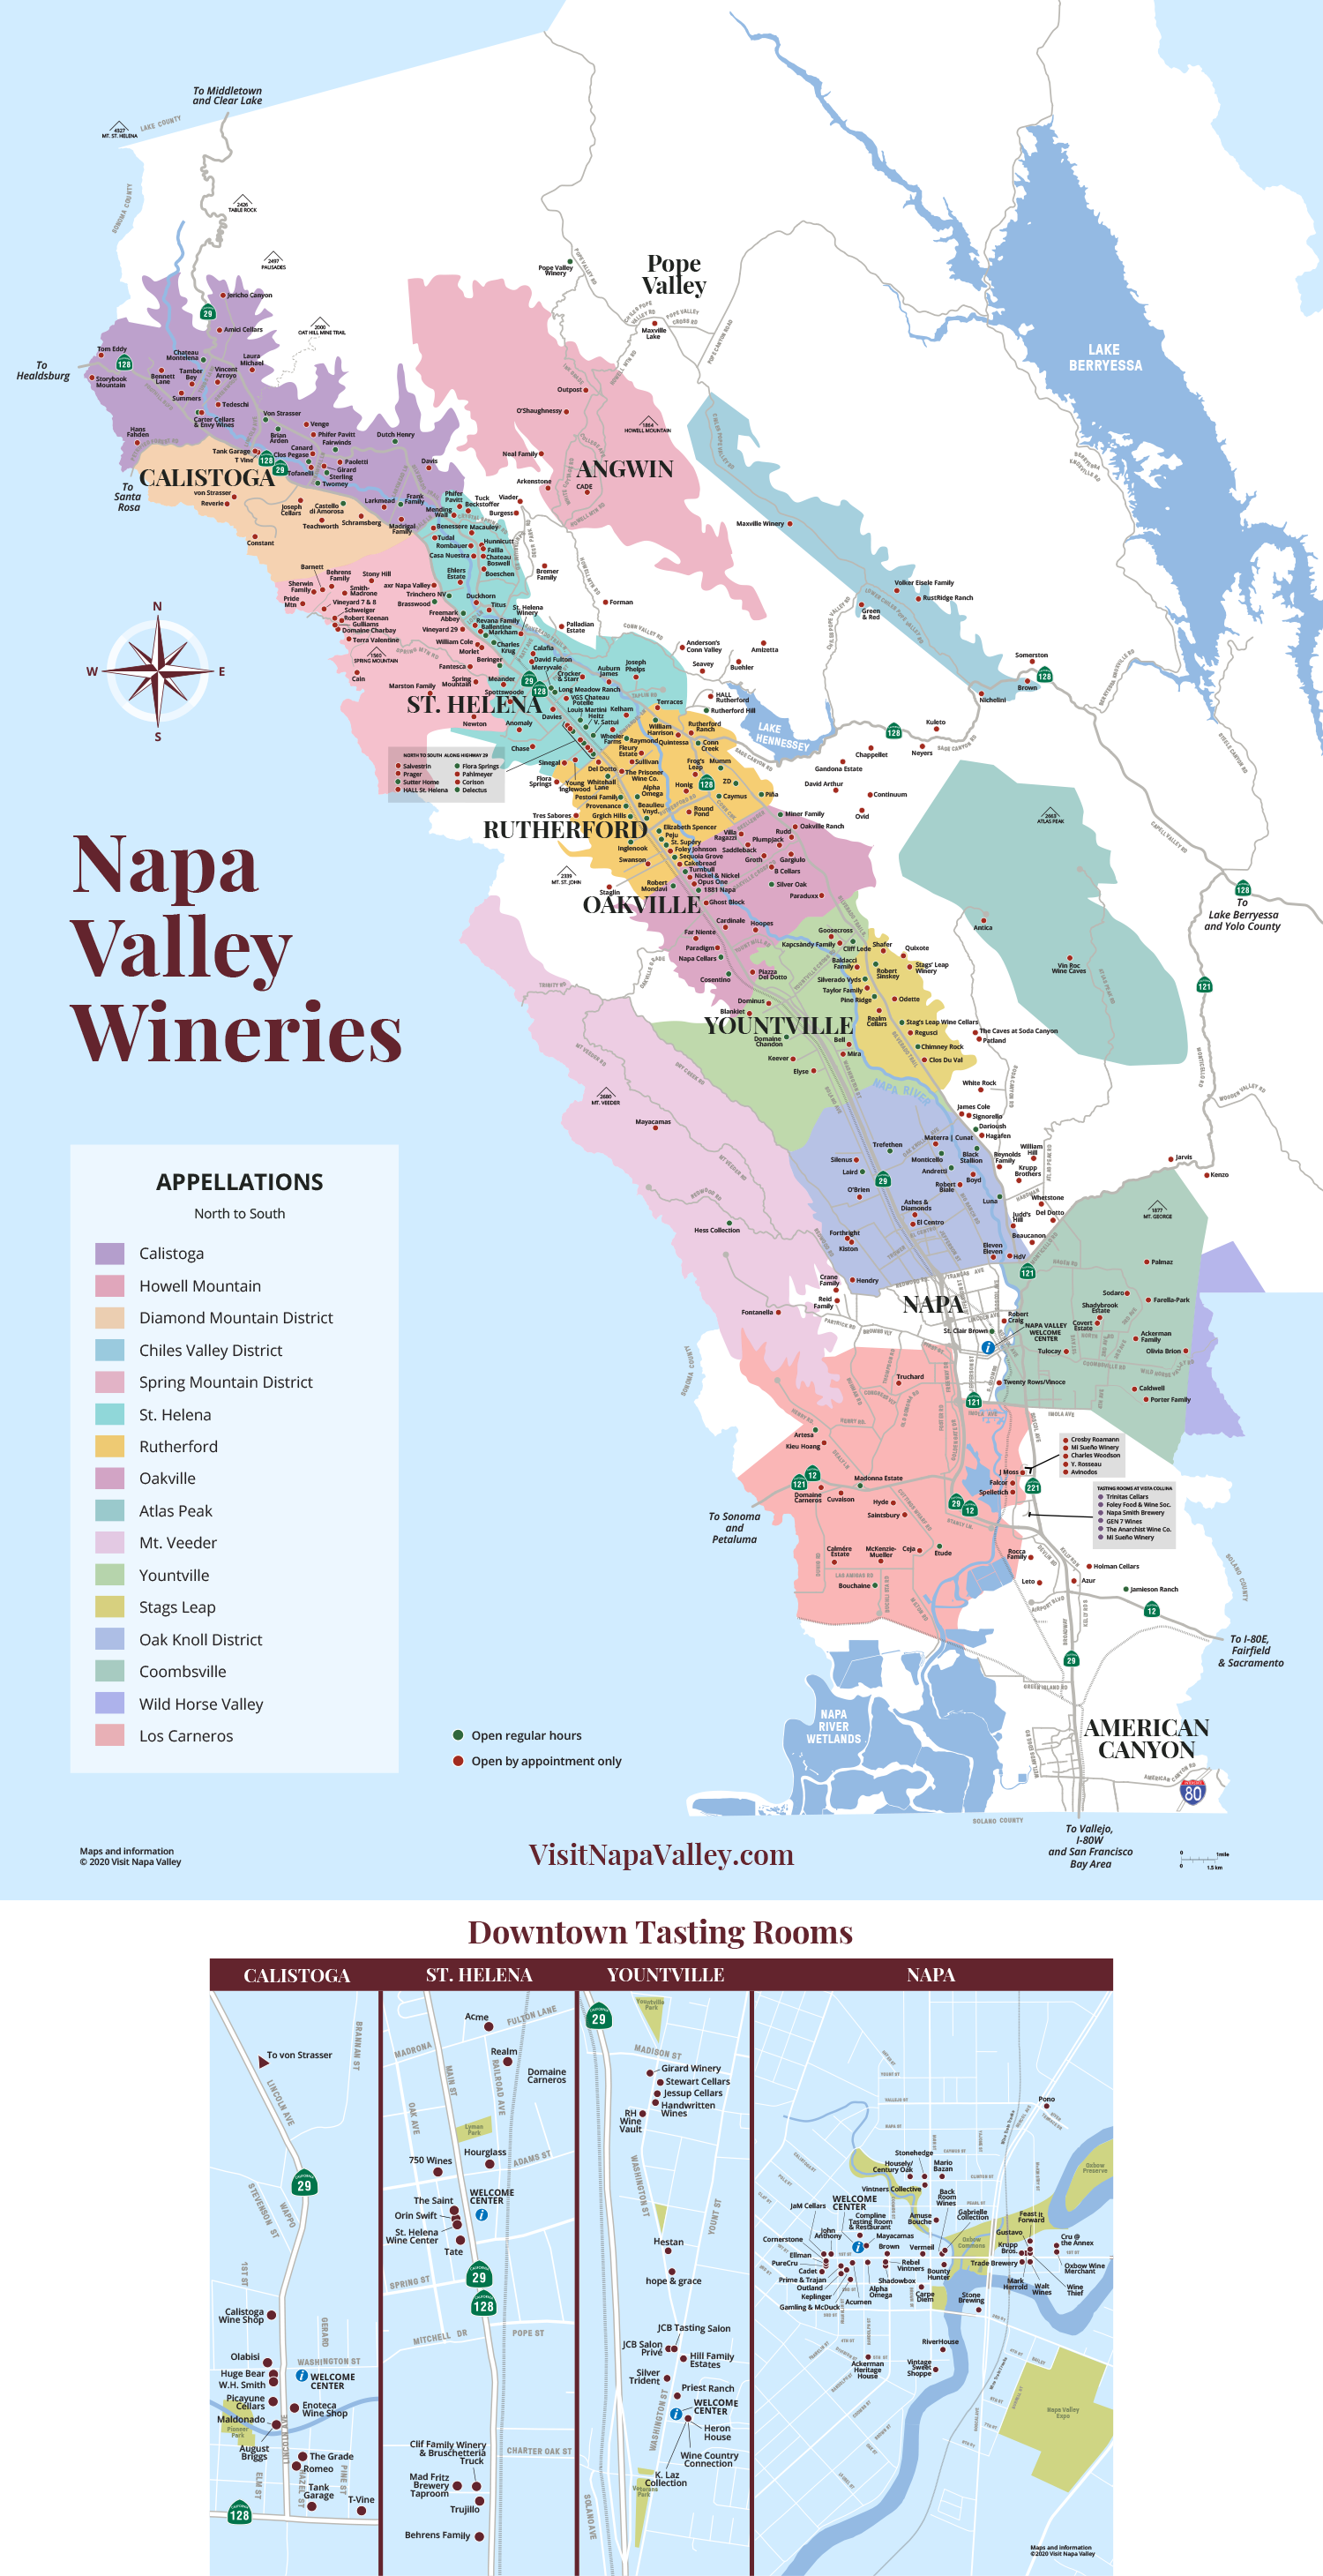 Napa Valley Wineries & Tasting Rooms Map